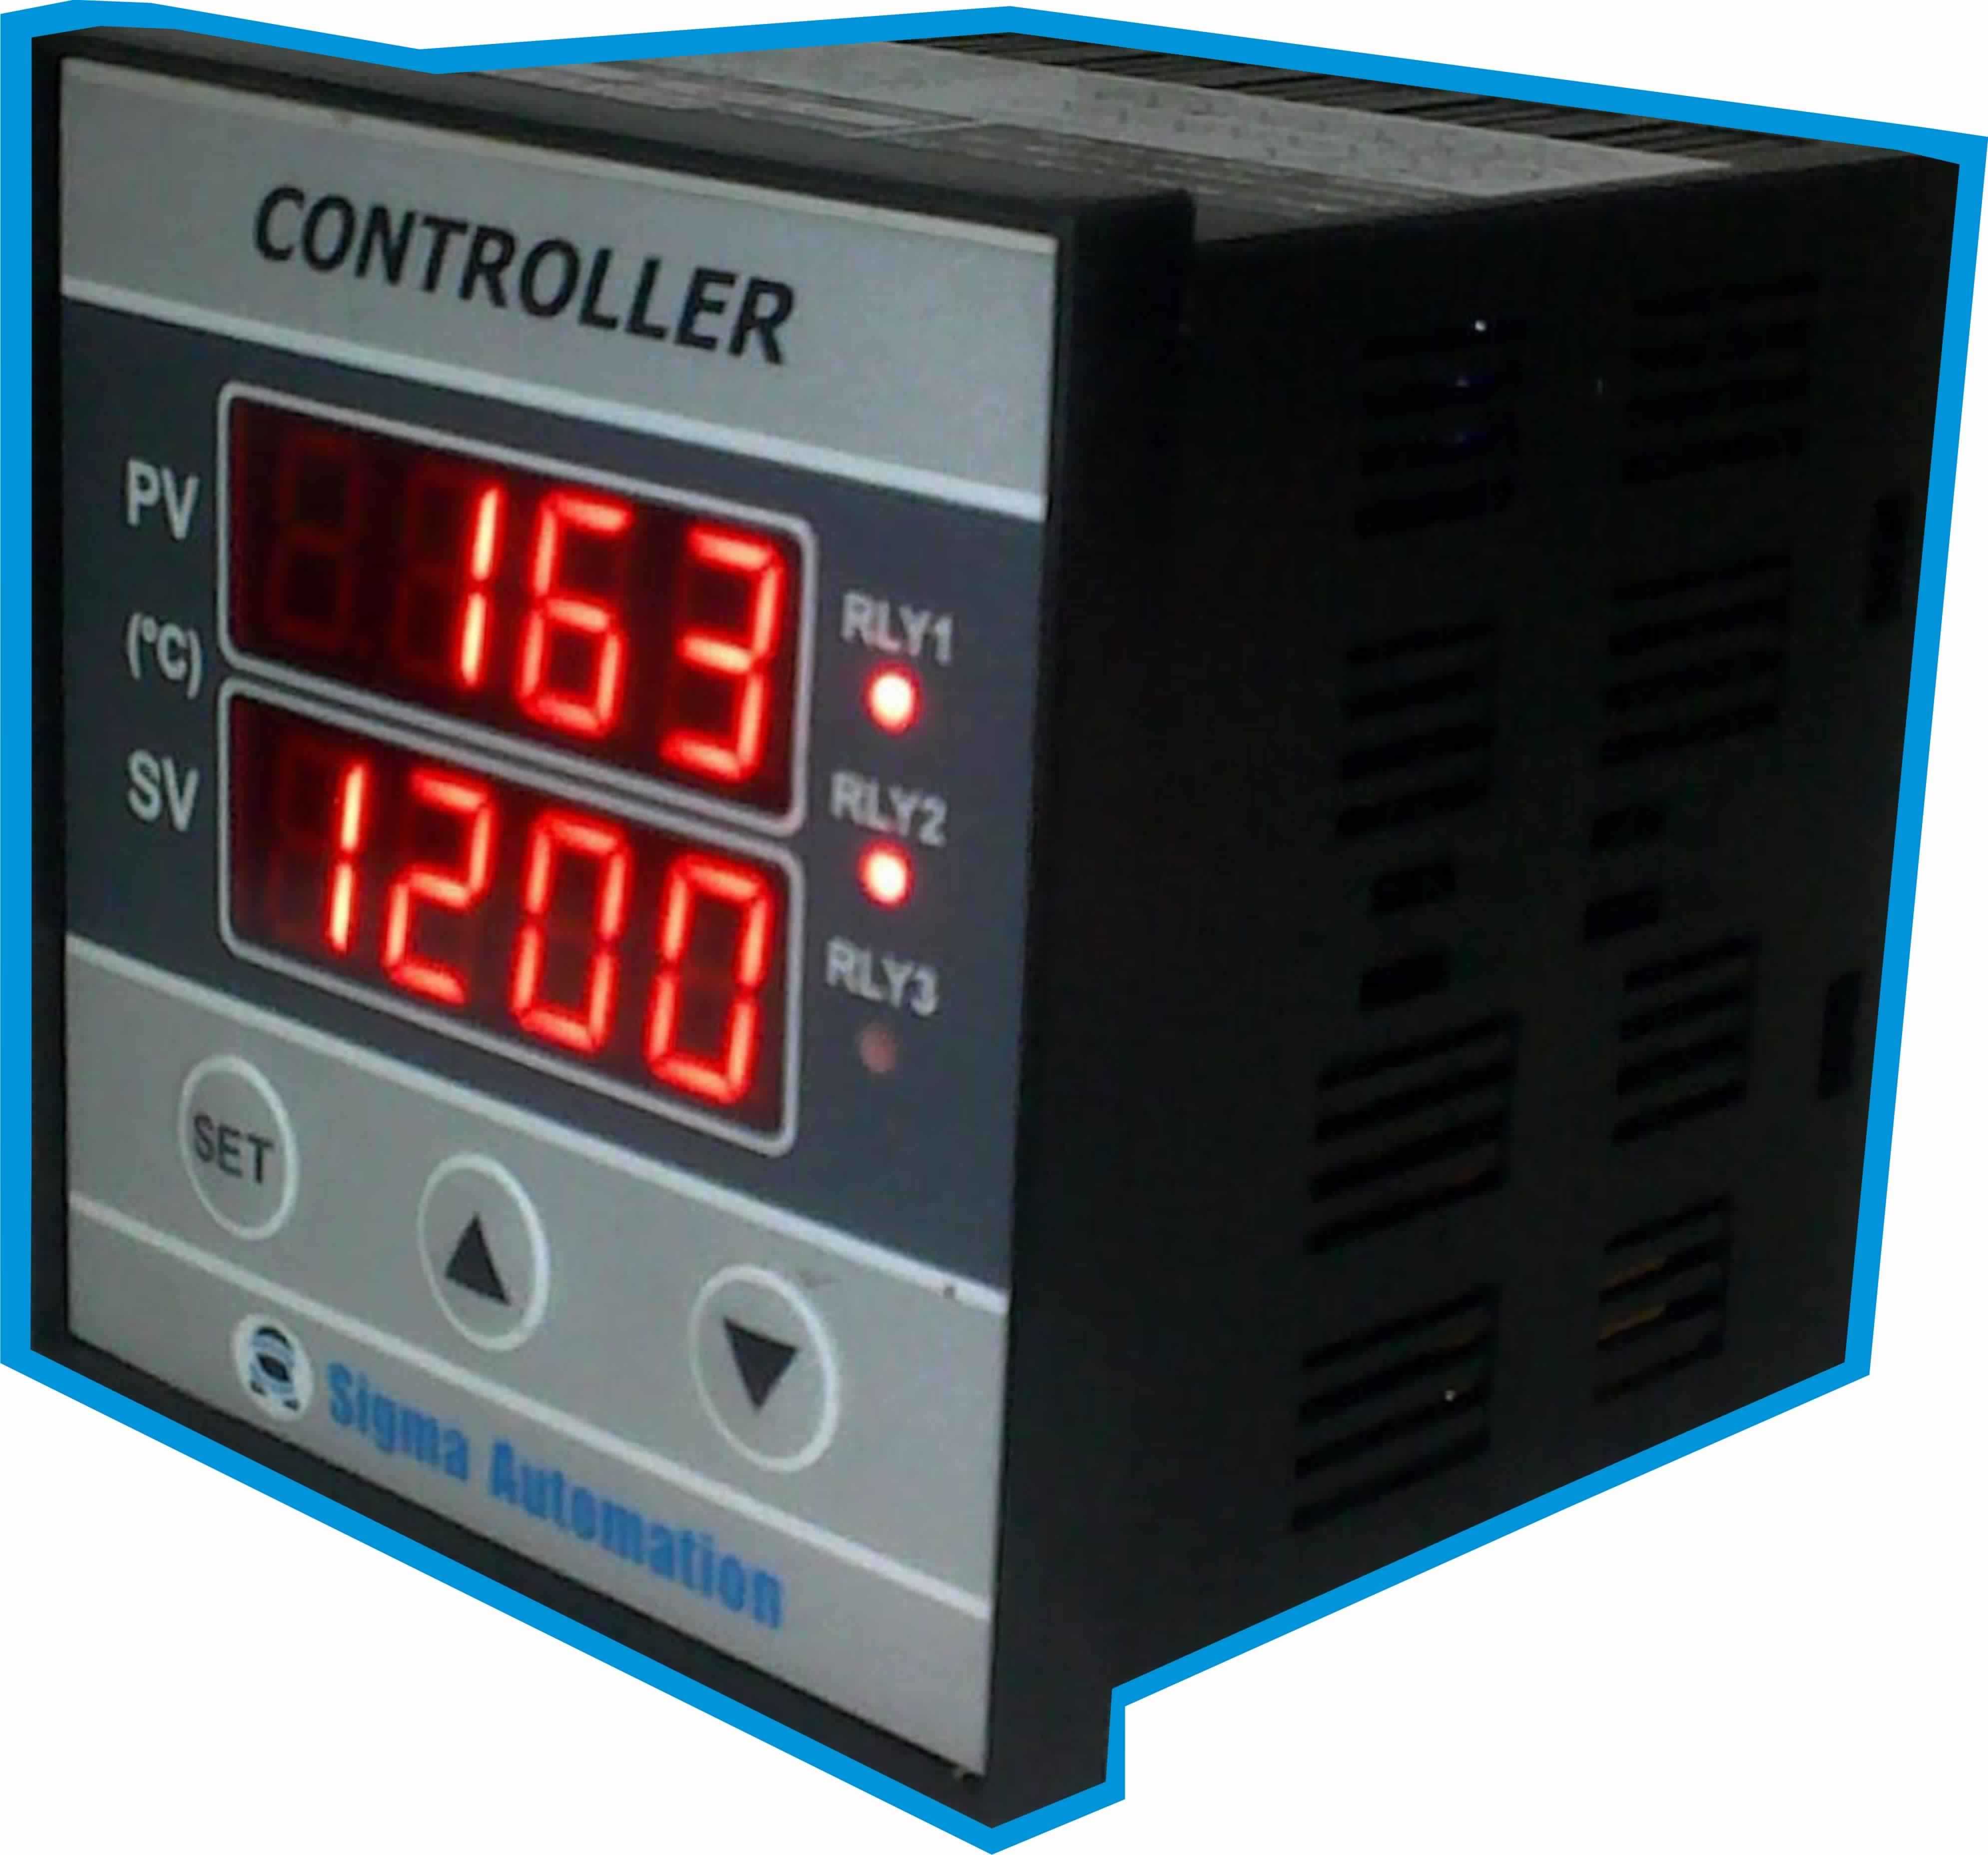 Dual Display For Pv Sv Output Configurable For Heating Or Cooling Configuration Disabled In User Mode Sens Process Control Temperature Control Automation